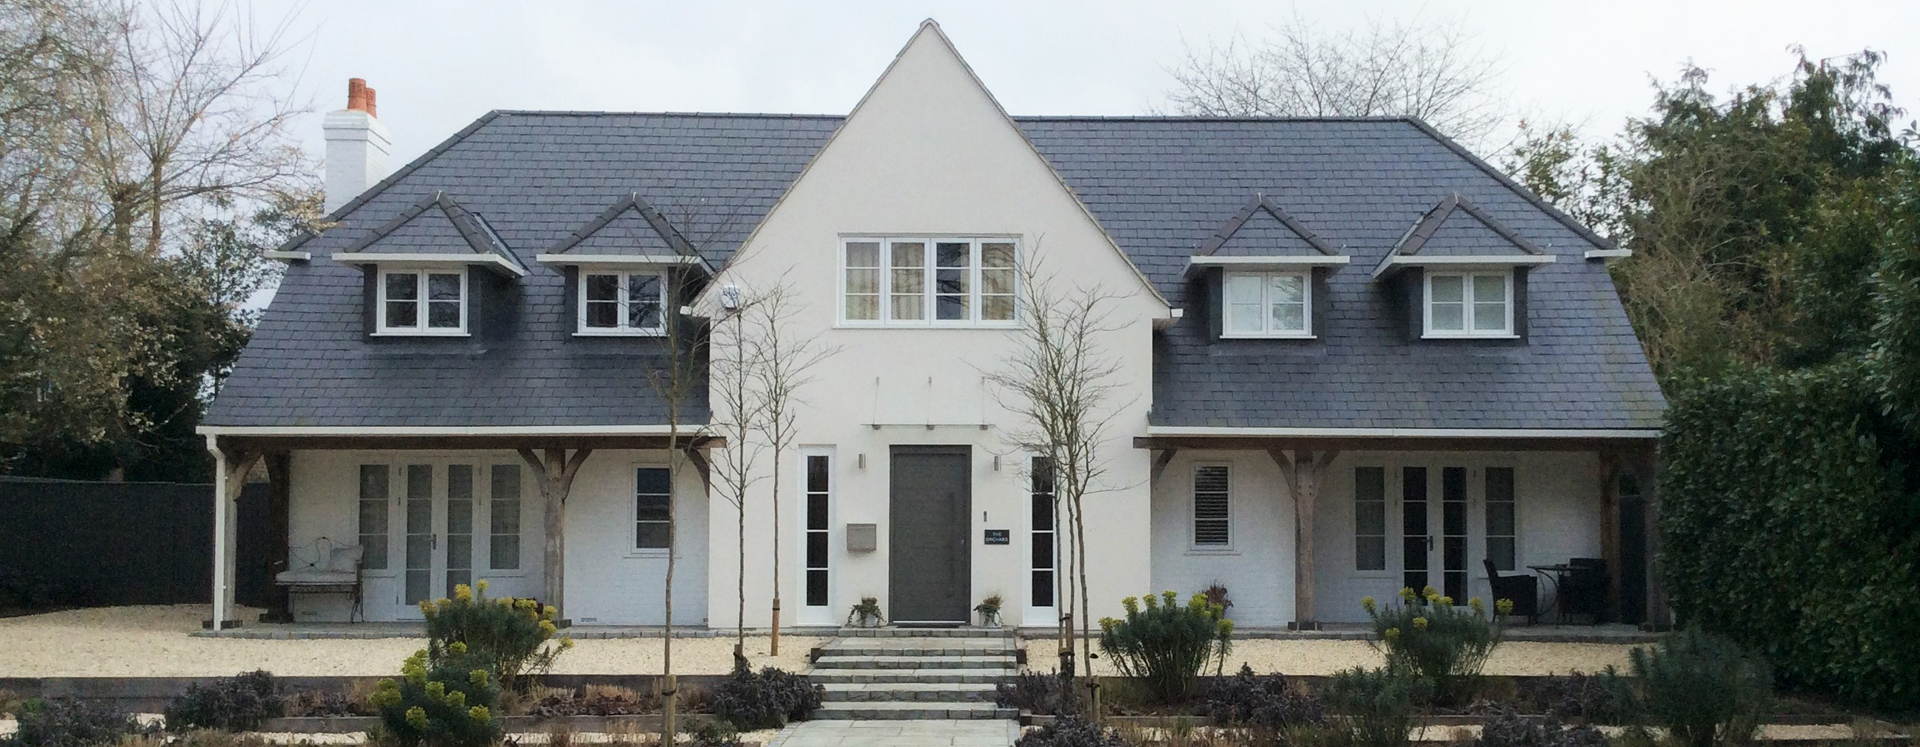 Brookeswood Joinery